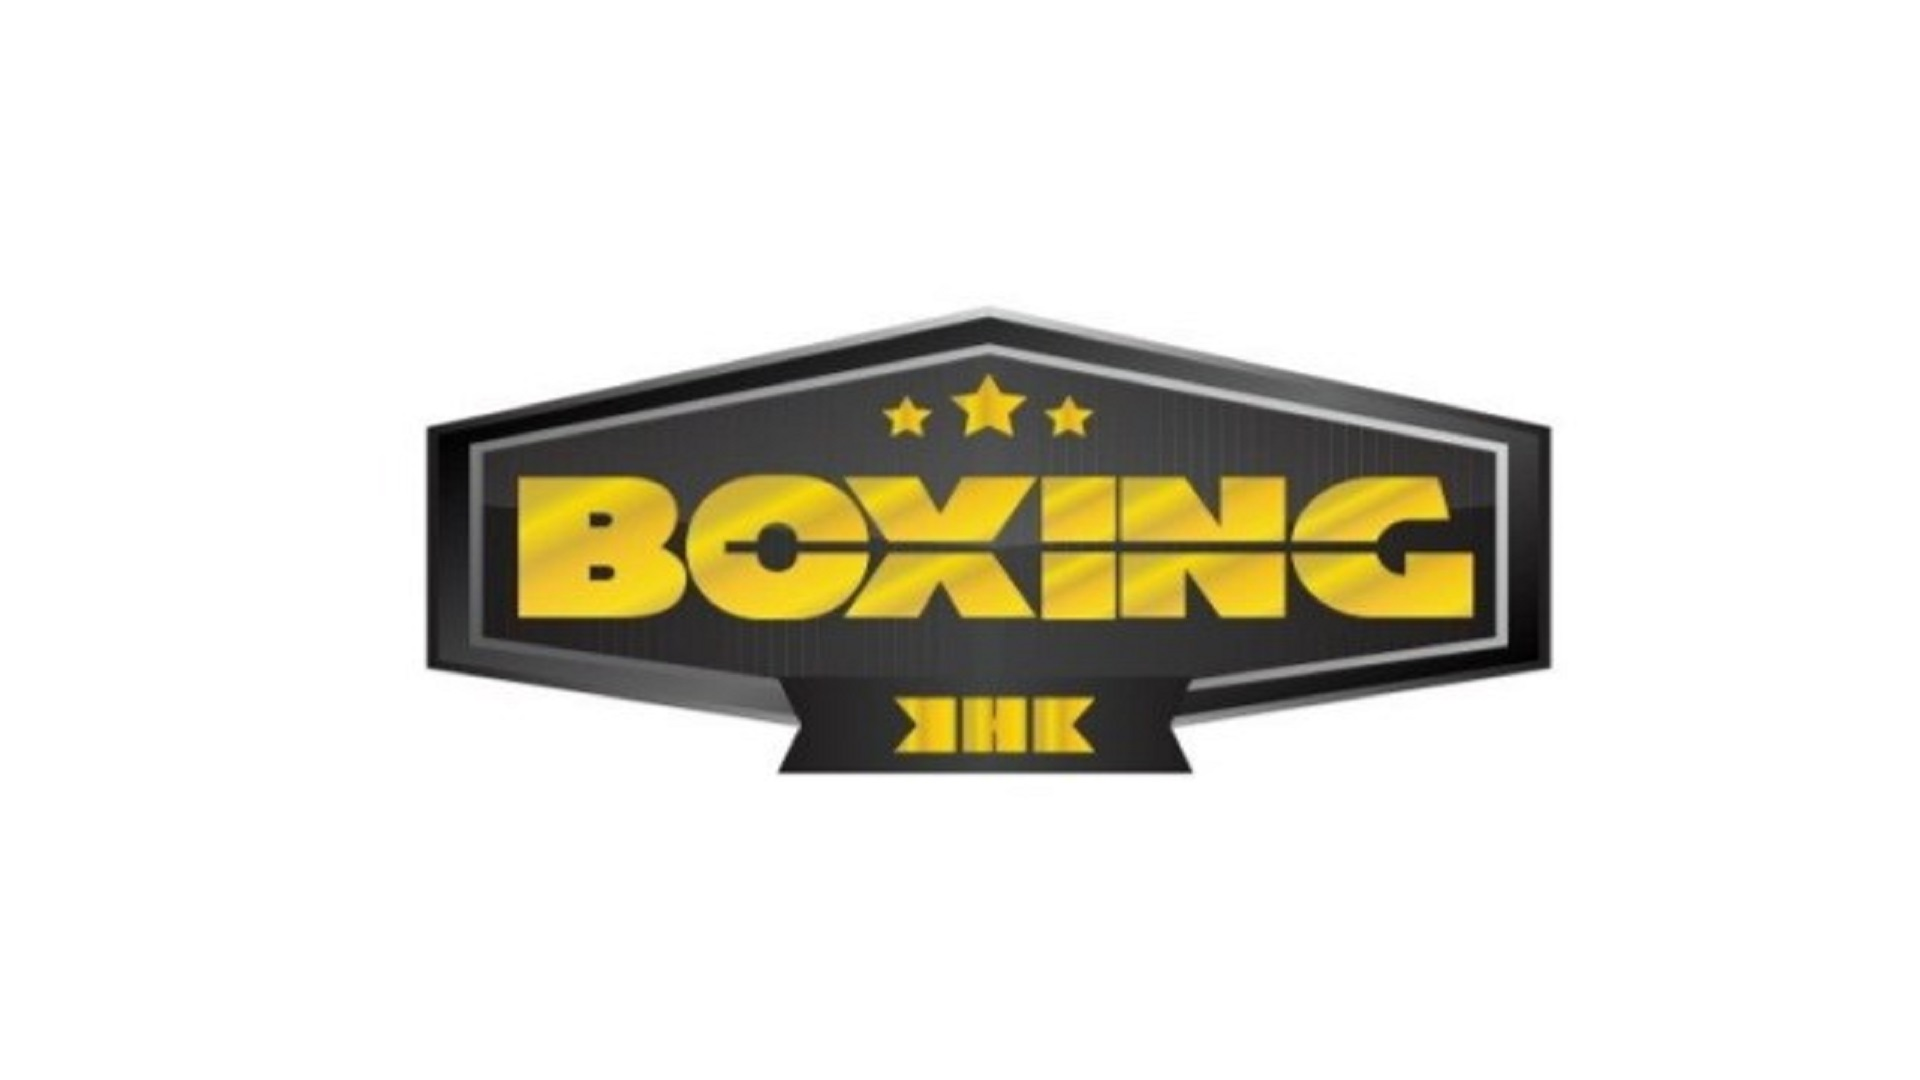 https://lockerroom.in/blog/view/KHK-Sports-Professional-Boxing